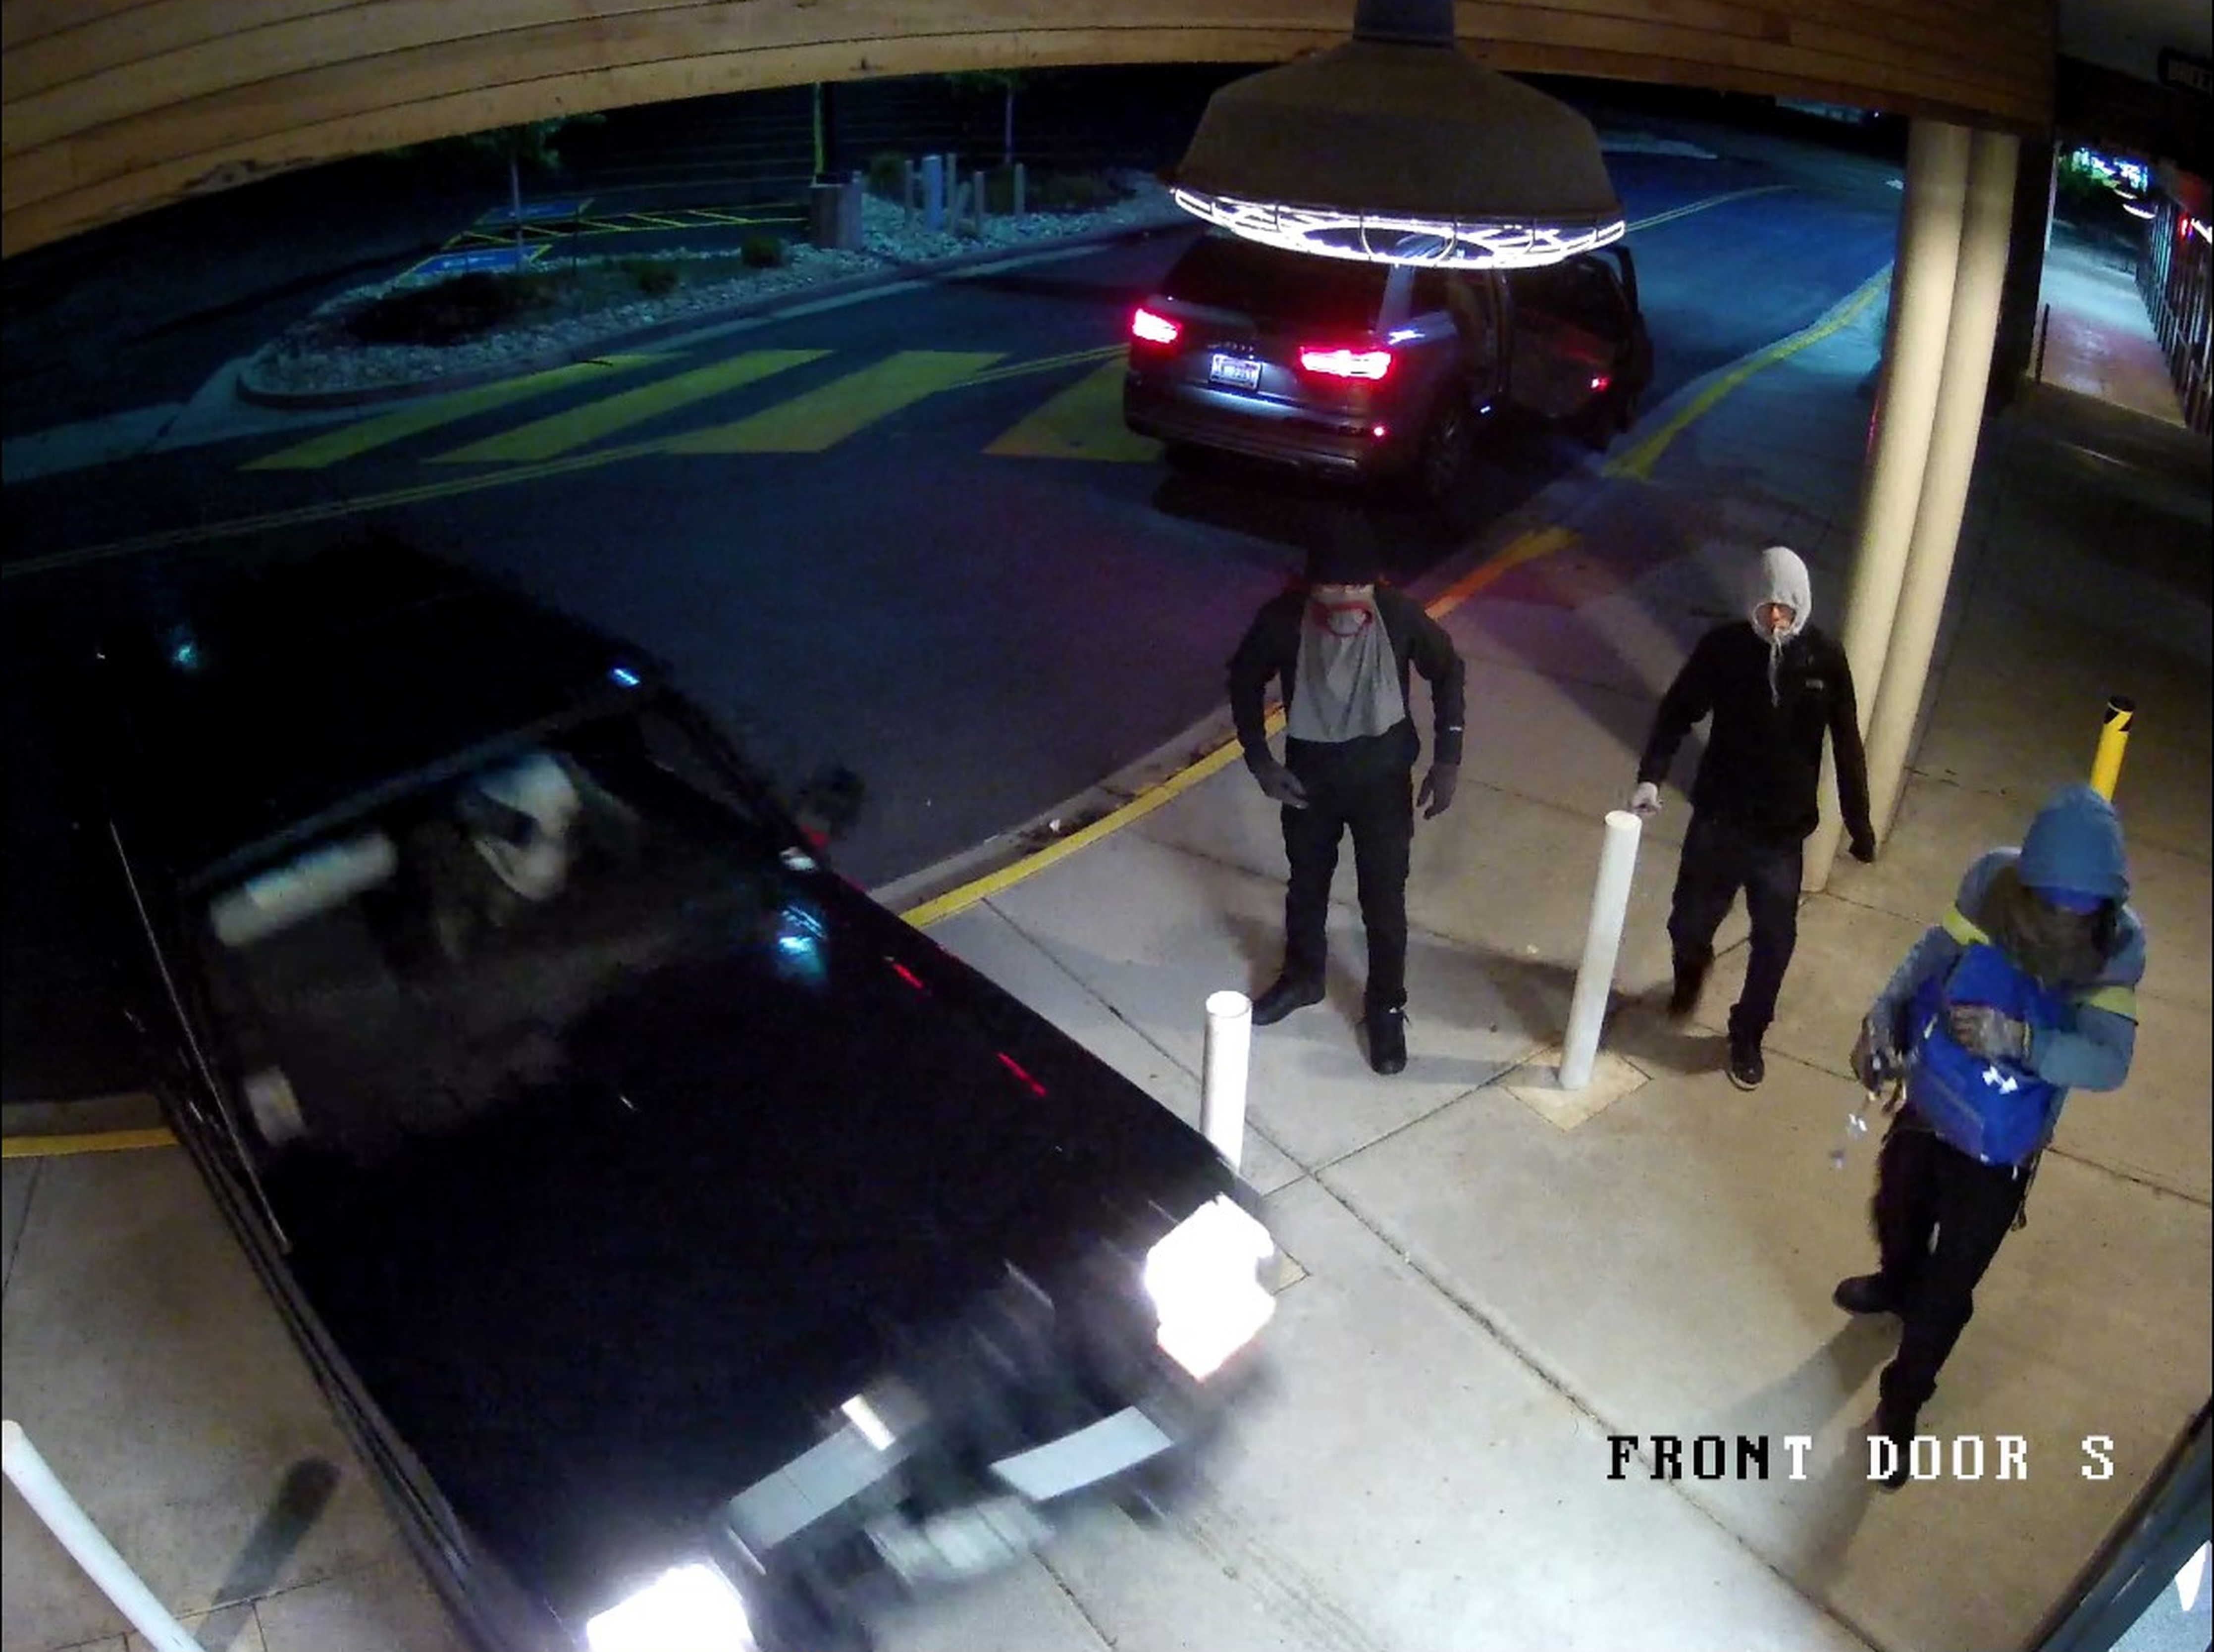 Image of all three suspects standing together.